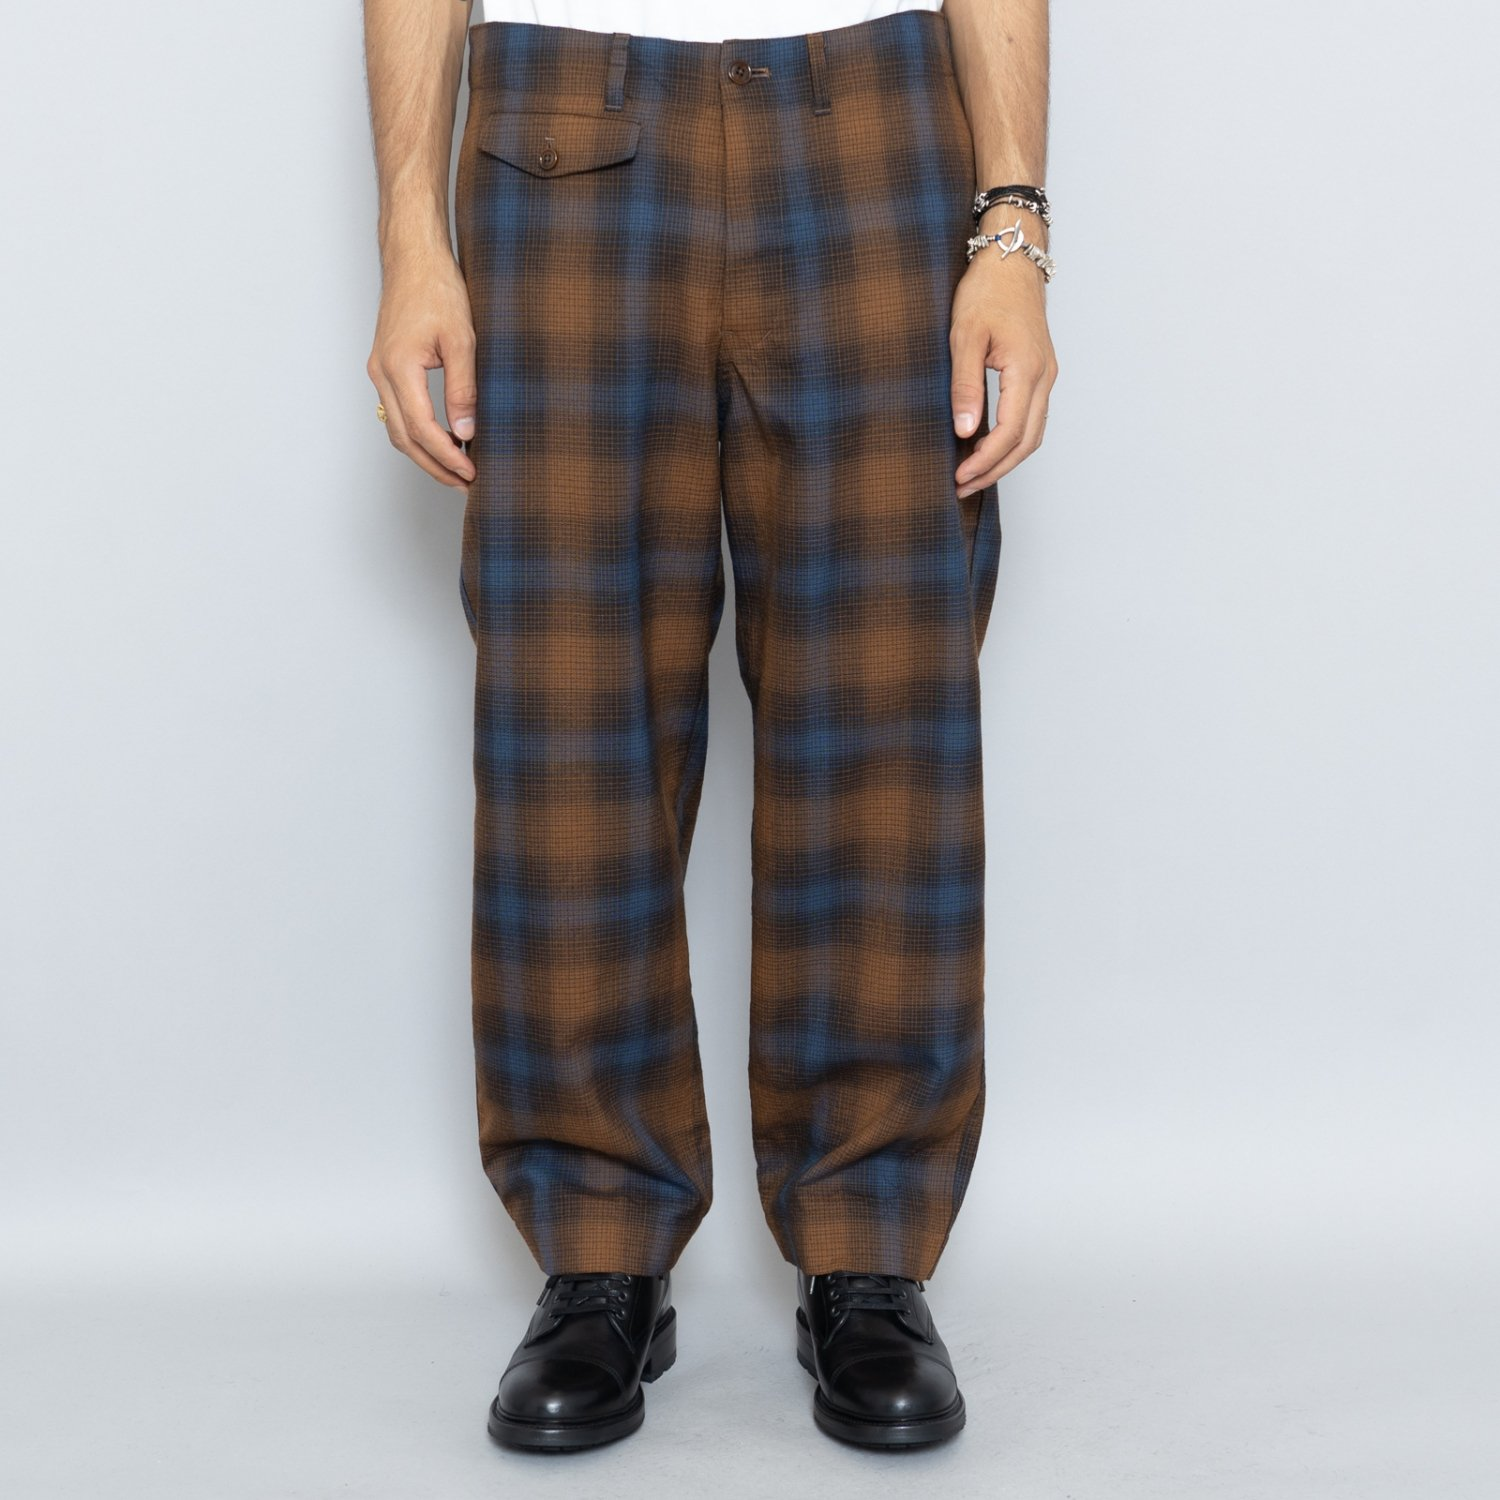 ts(s) * Ombre Plaid Wool Cloth Natural Tapered Pants * Brown